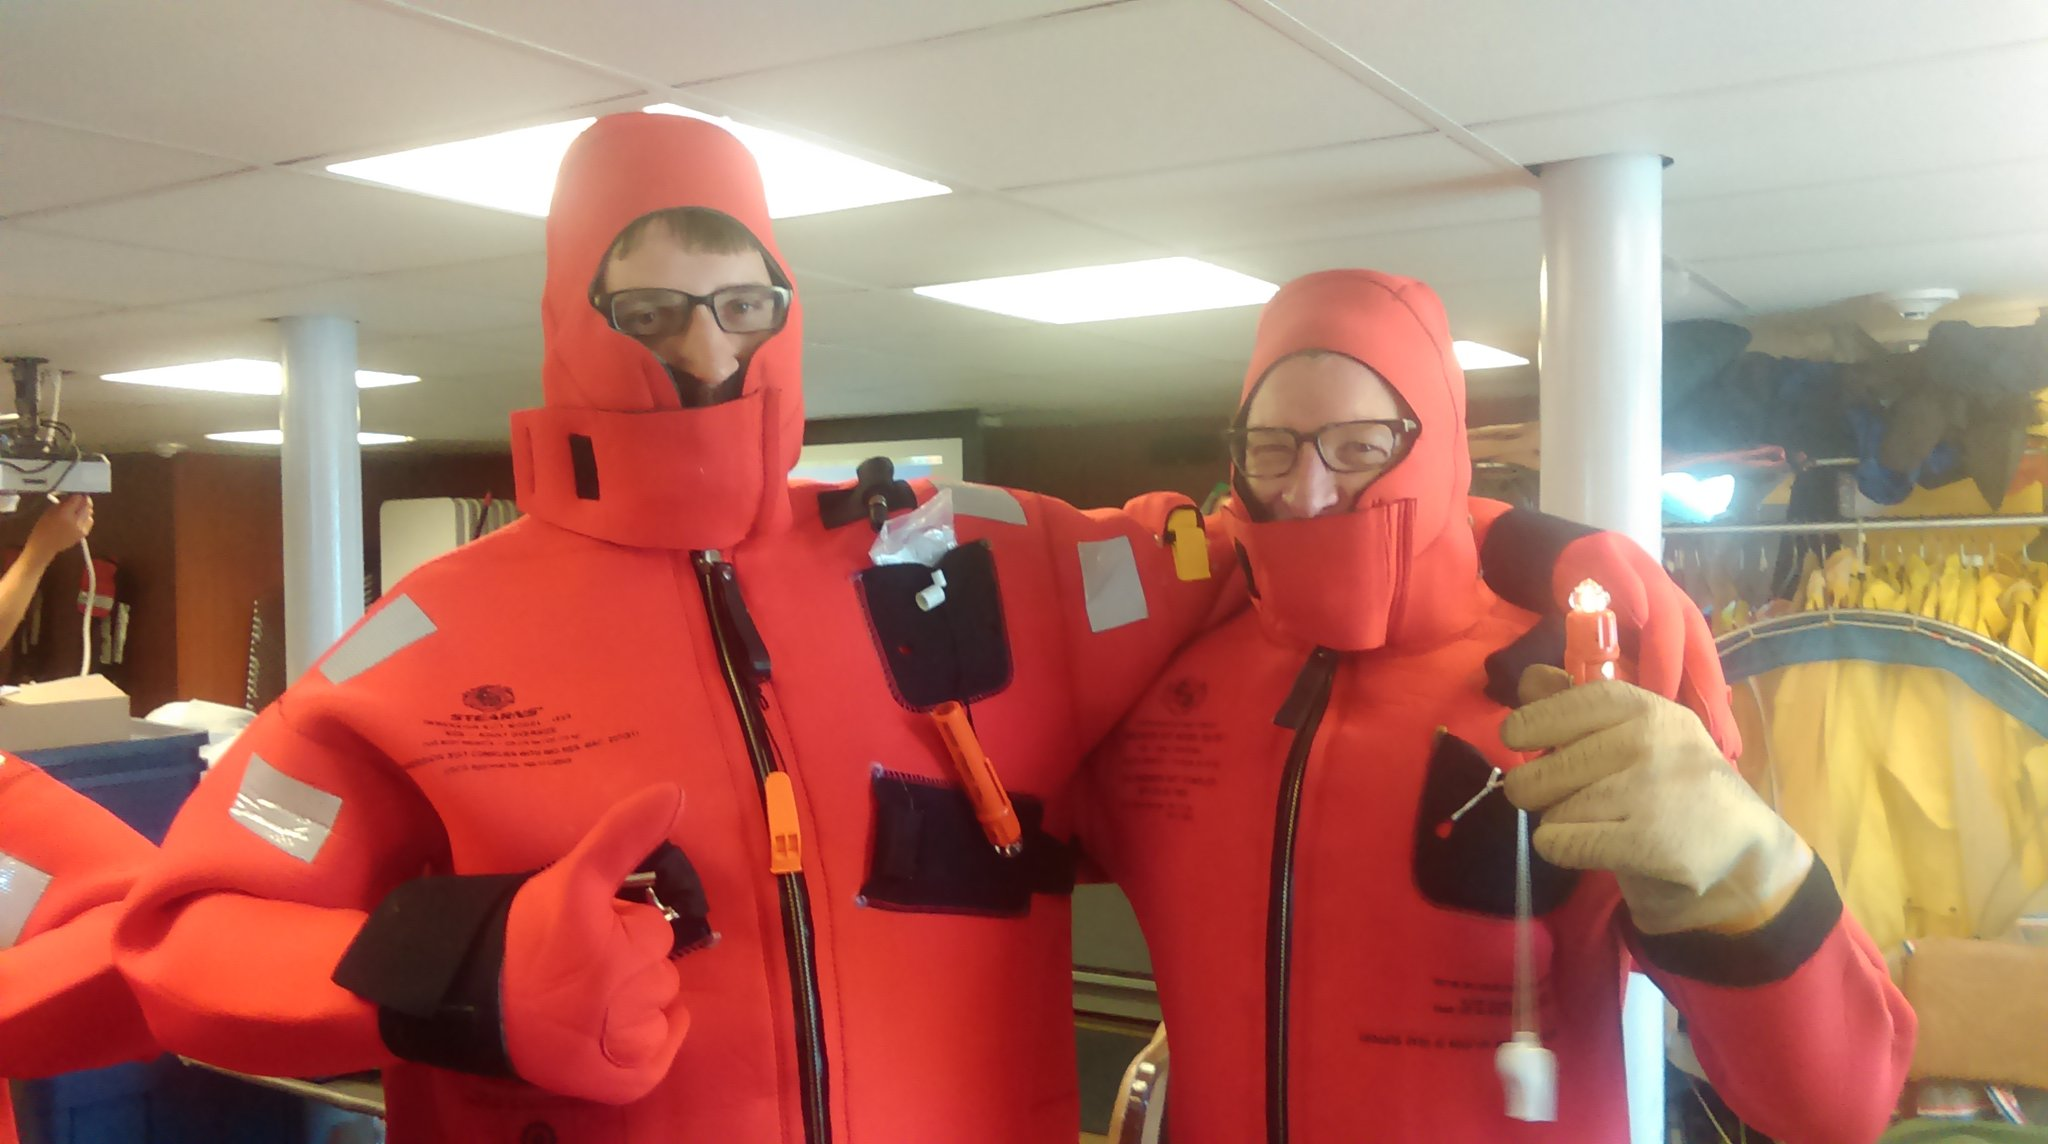 #GreatLakes scientists learn to don immersion suits (aka Gumby suits). #SafetyFirst  #PPE #SummerSurvey2016 https://t.co/gz79BHBxBX